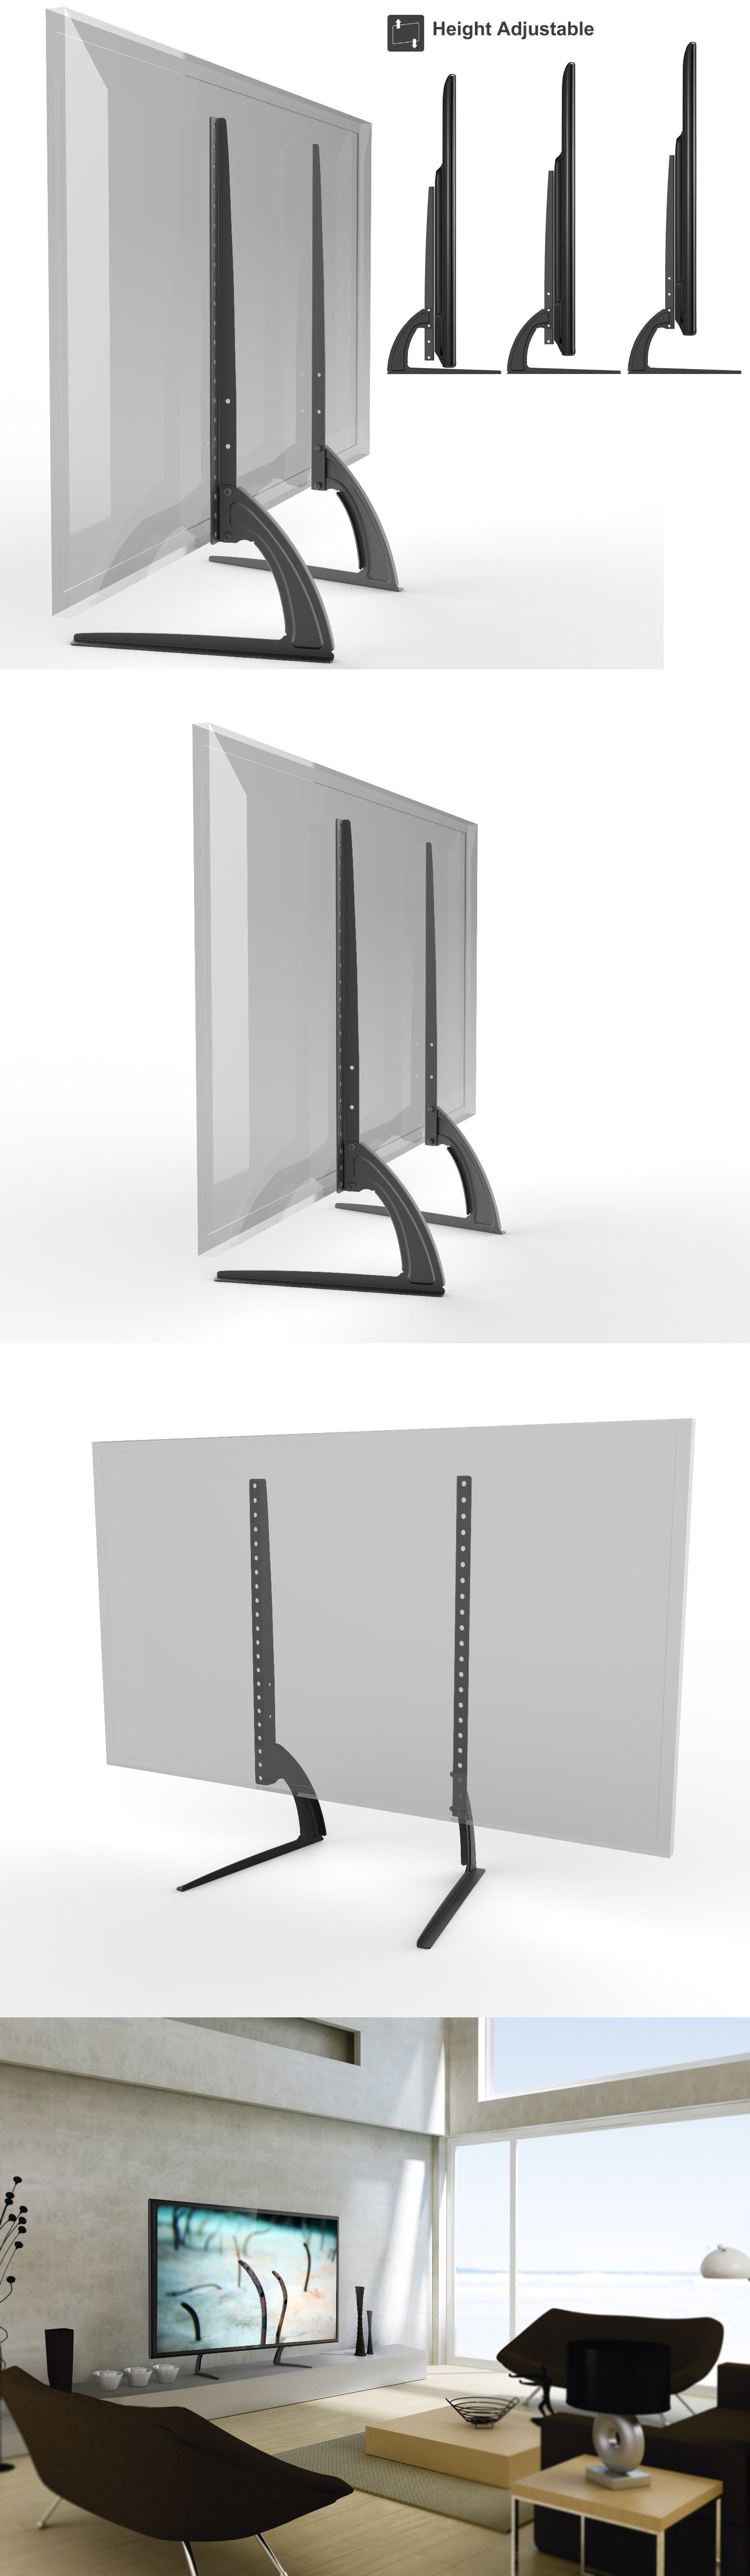 TV Mounts and Brackets Hta327 Universal Table Top Tv Stand Legs For